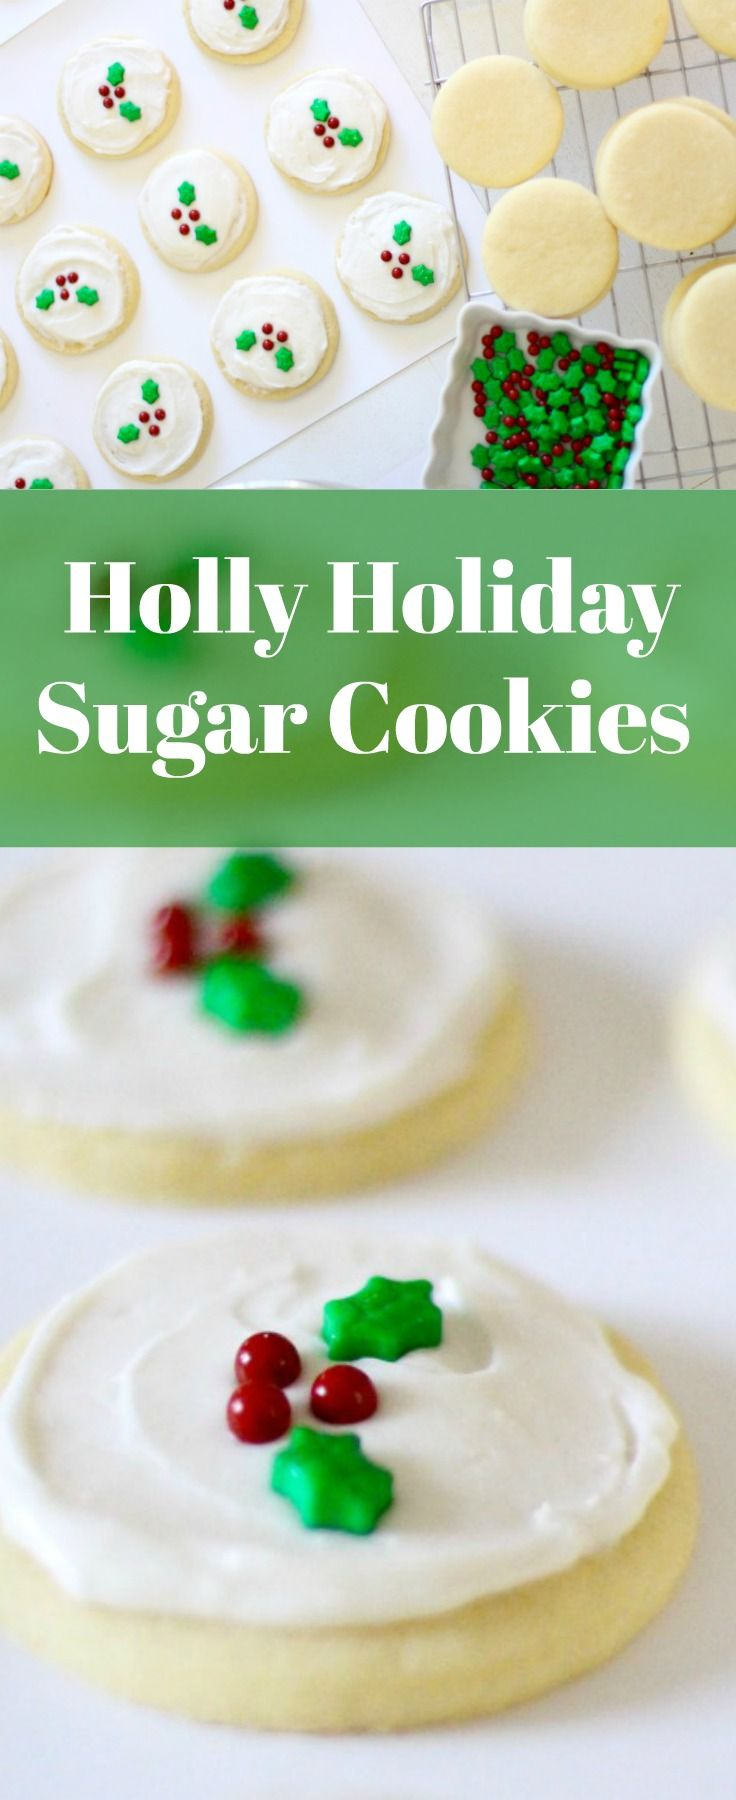 This homemade sugar cookie recipe is the best and perfect for Christmas and the holiday season. They are chewy and soft. The dough is easy to make, and the frosting is delicious! I like these even better than Swig!